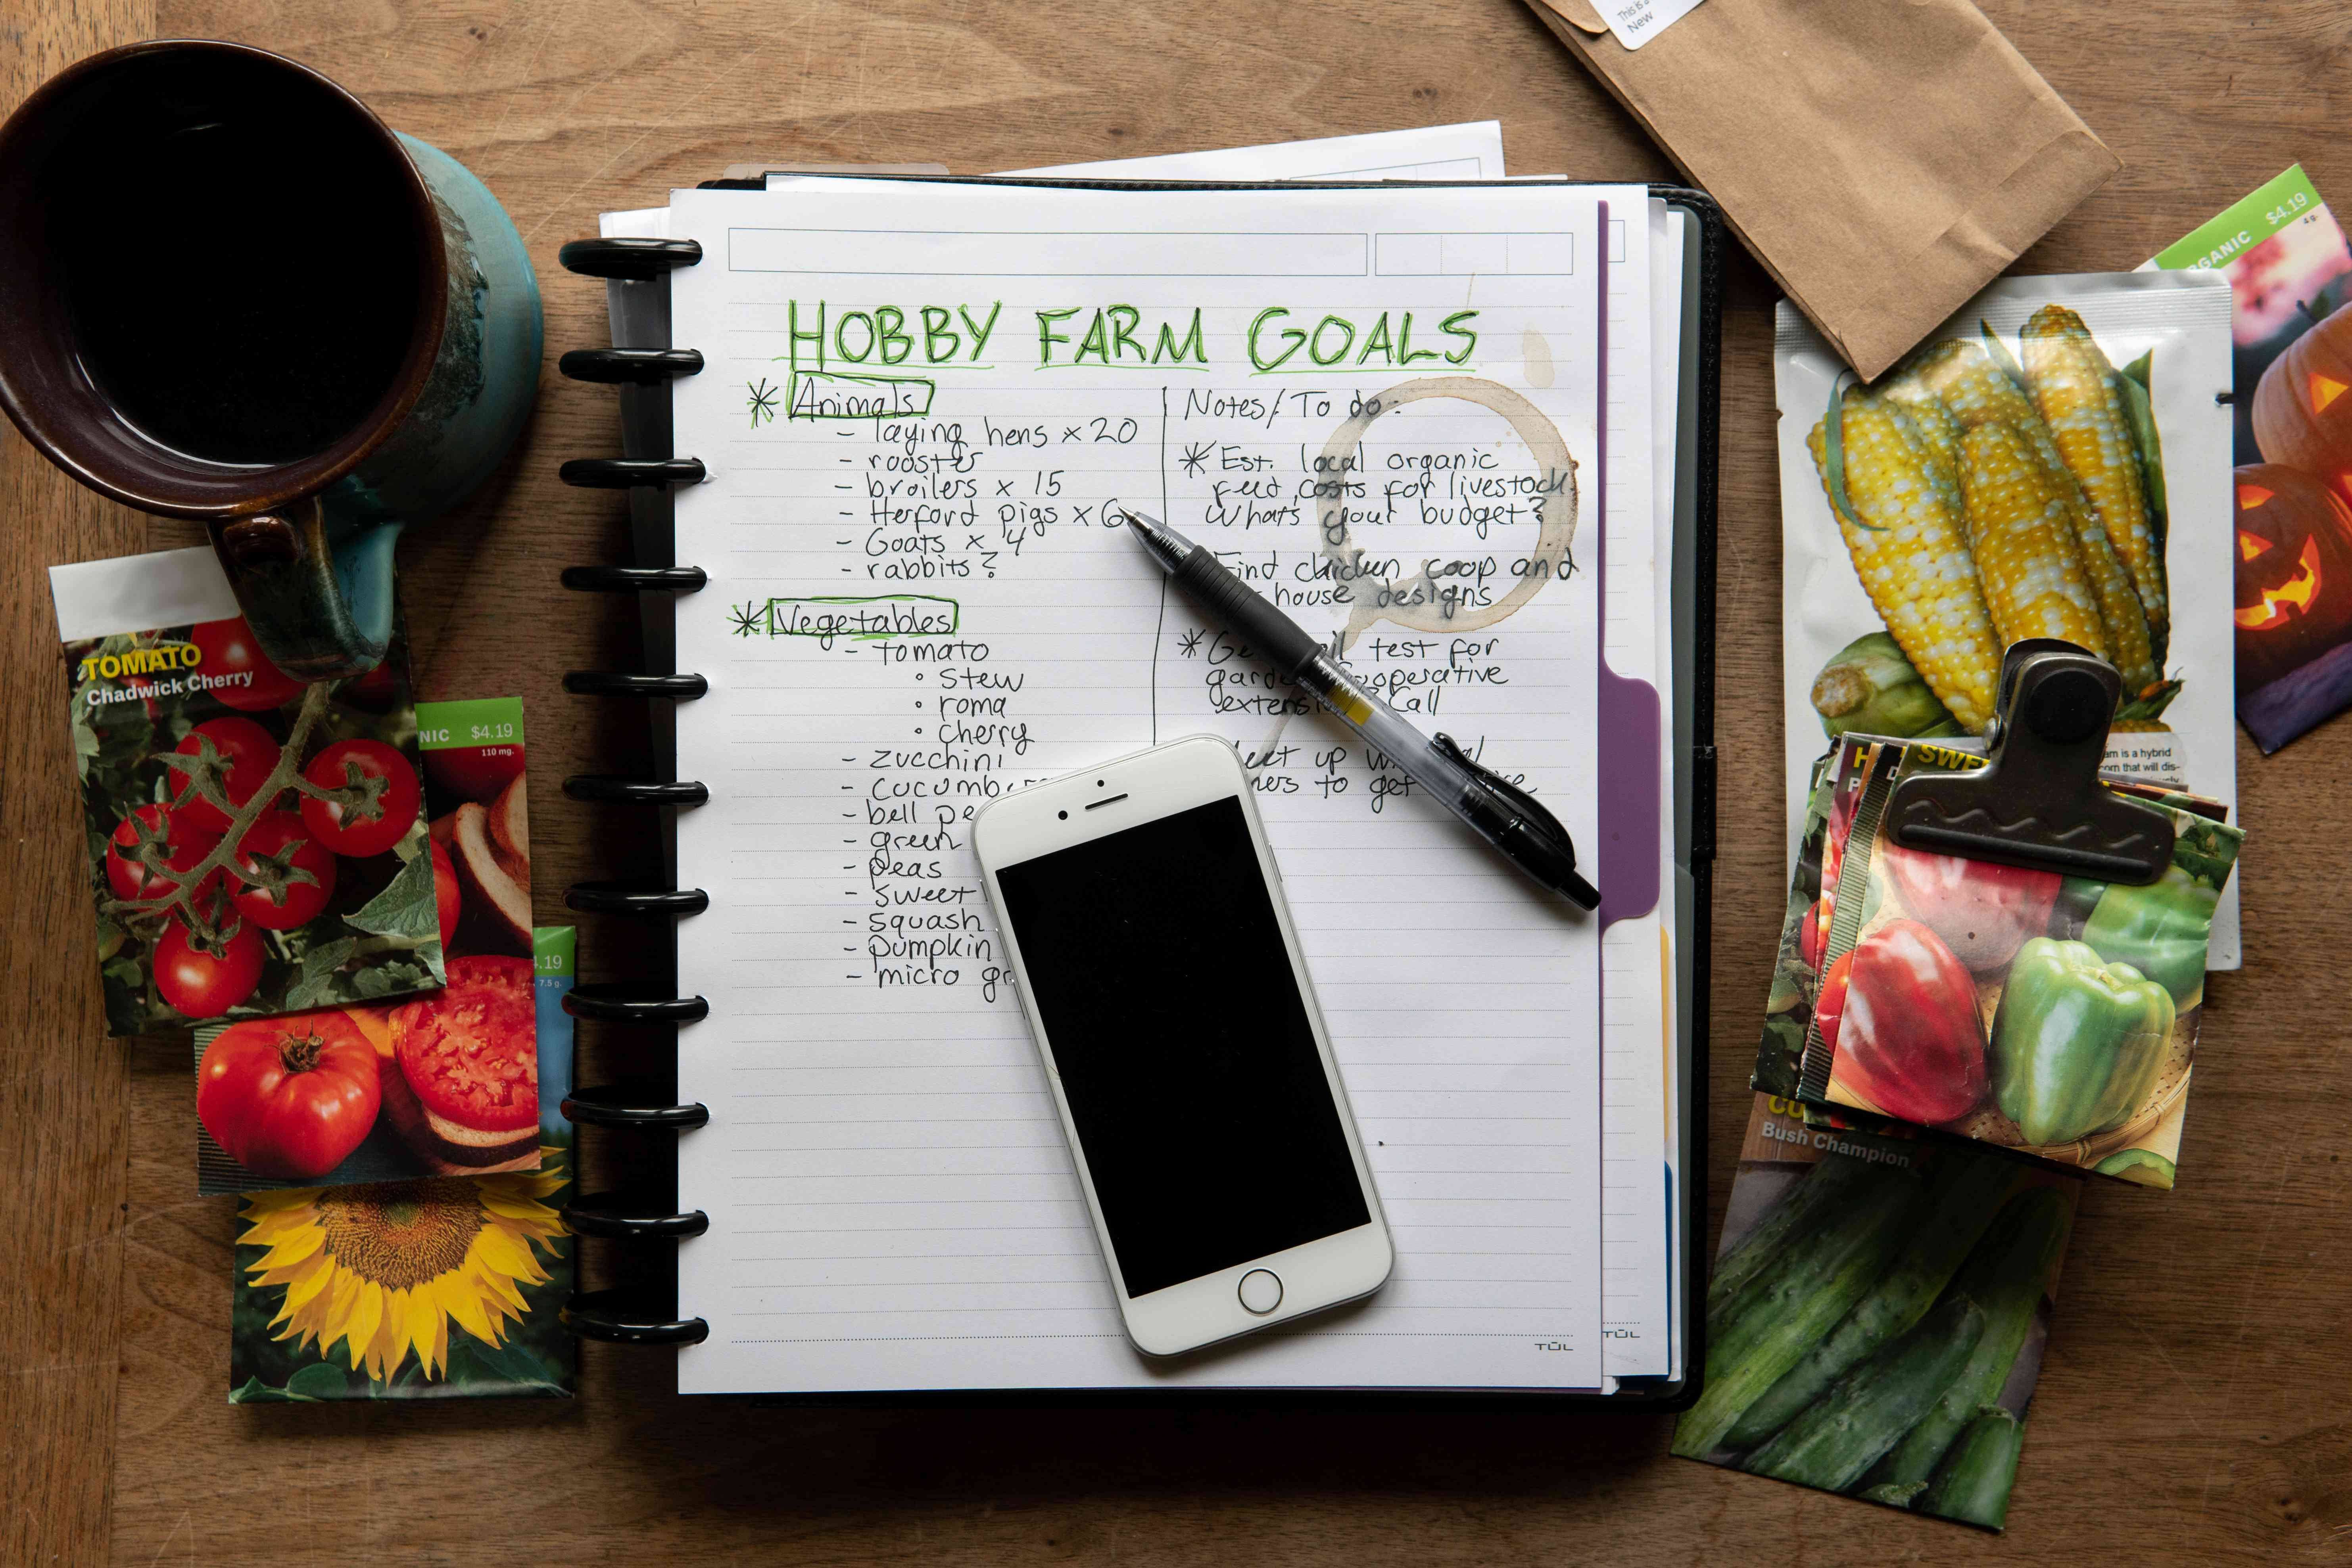 overhead shot of notebook with hobby farm goals surrounded by seeds